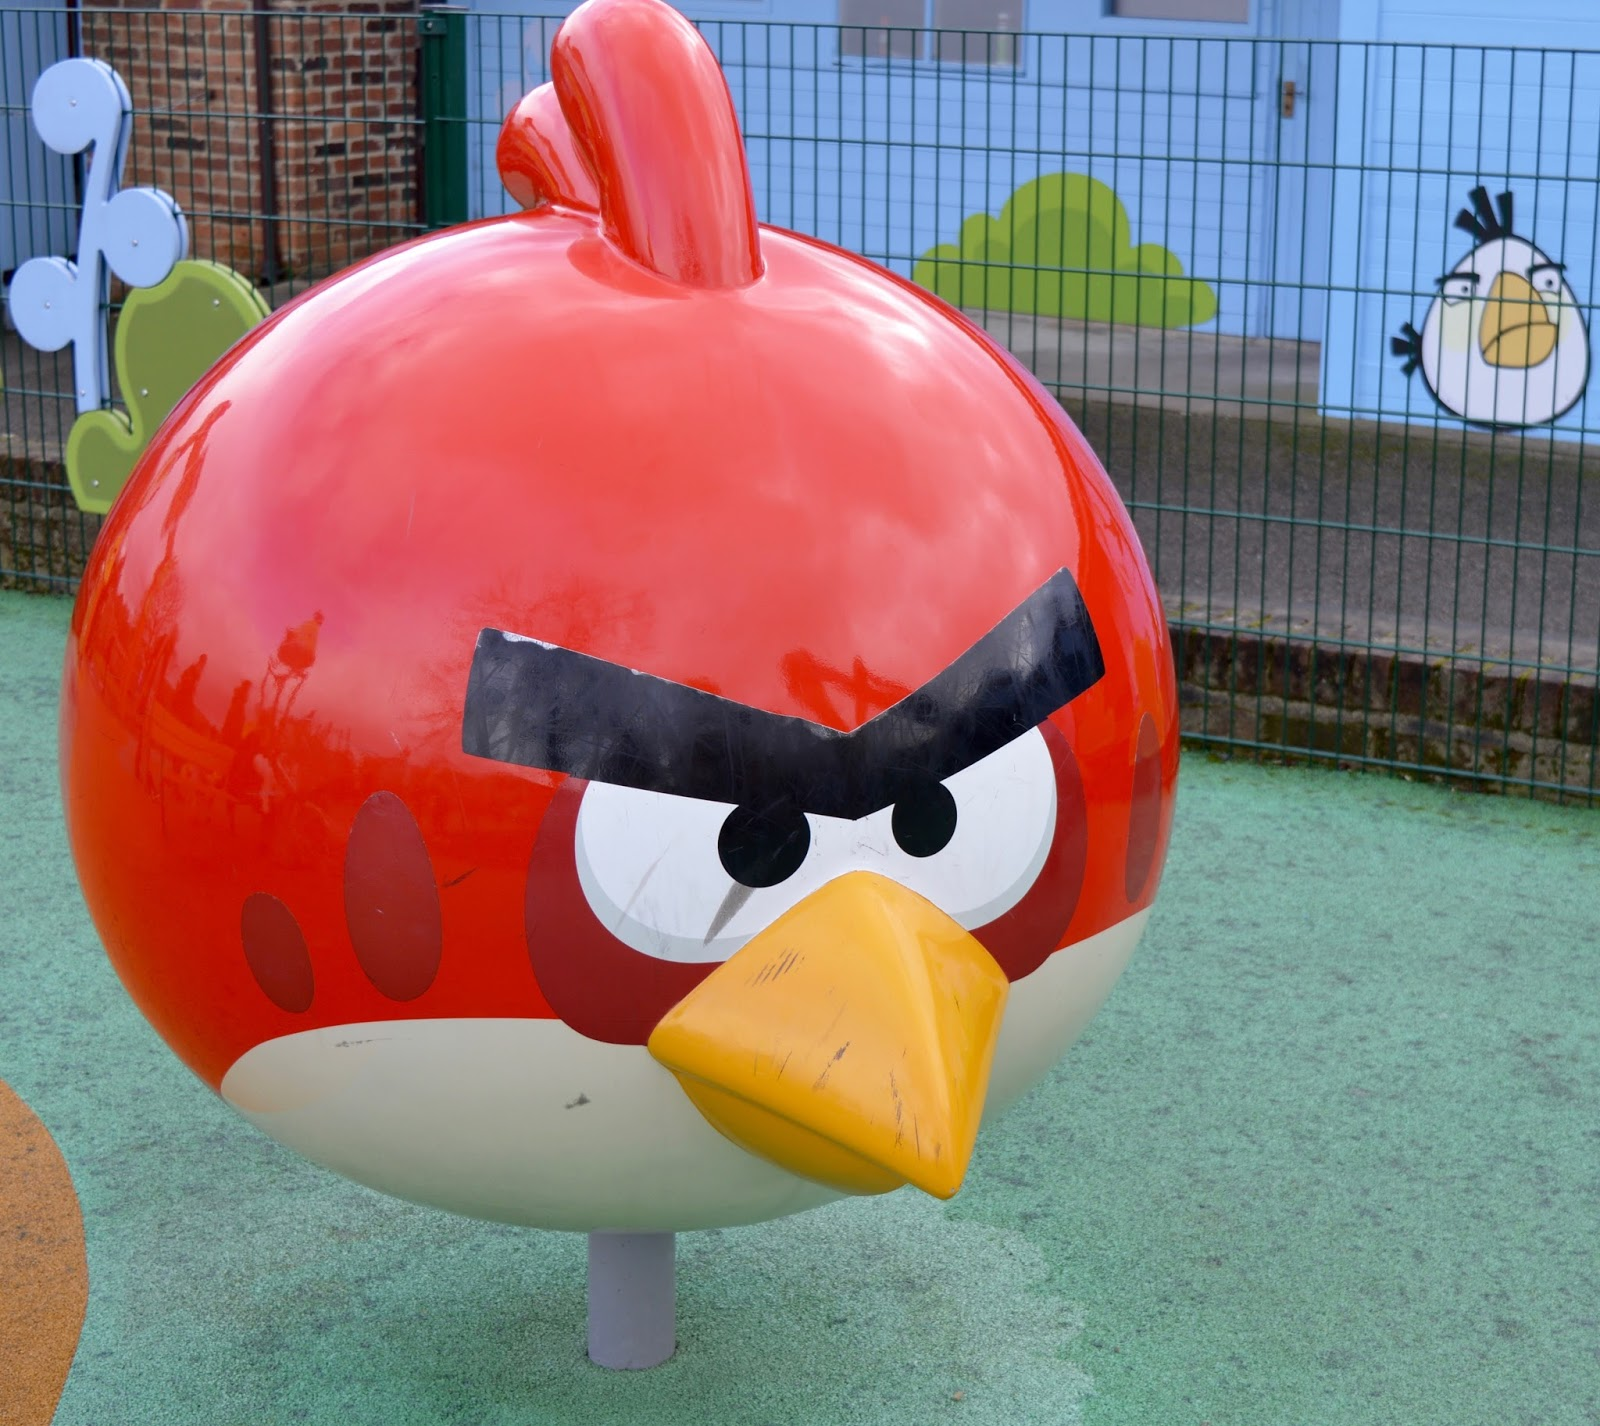 Visiting Angry Birds Activity Park at Lightwater Valley, North Yorkshire - red angry bird